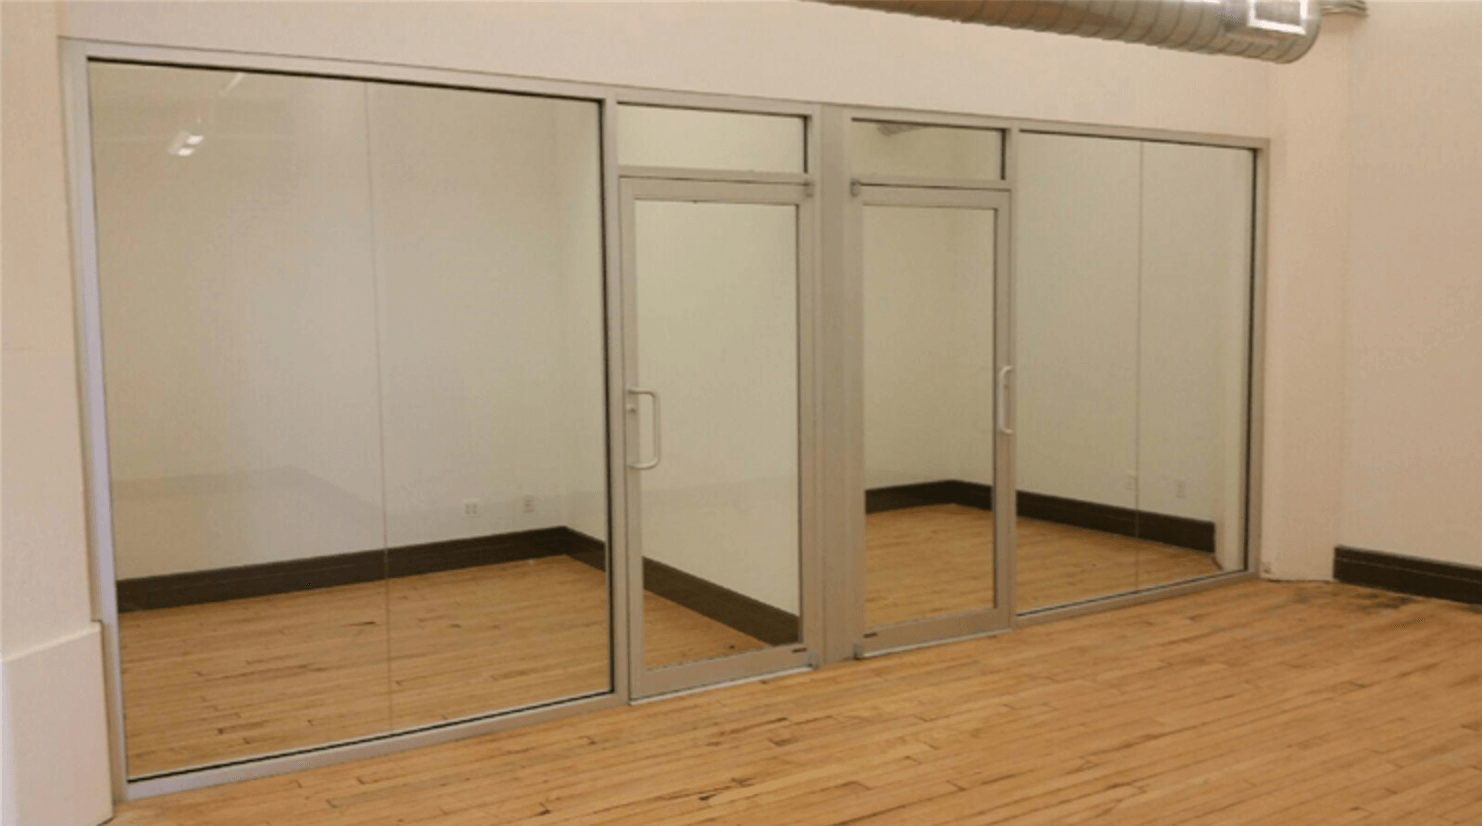 Glass Walls, Partitions, & Railings